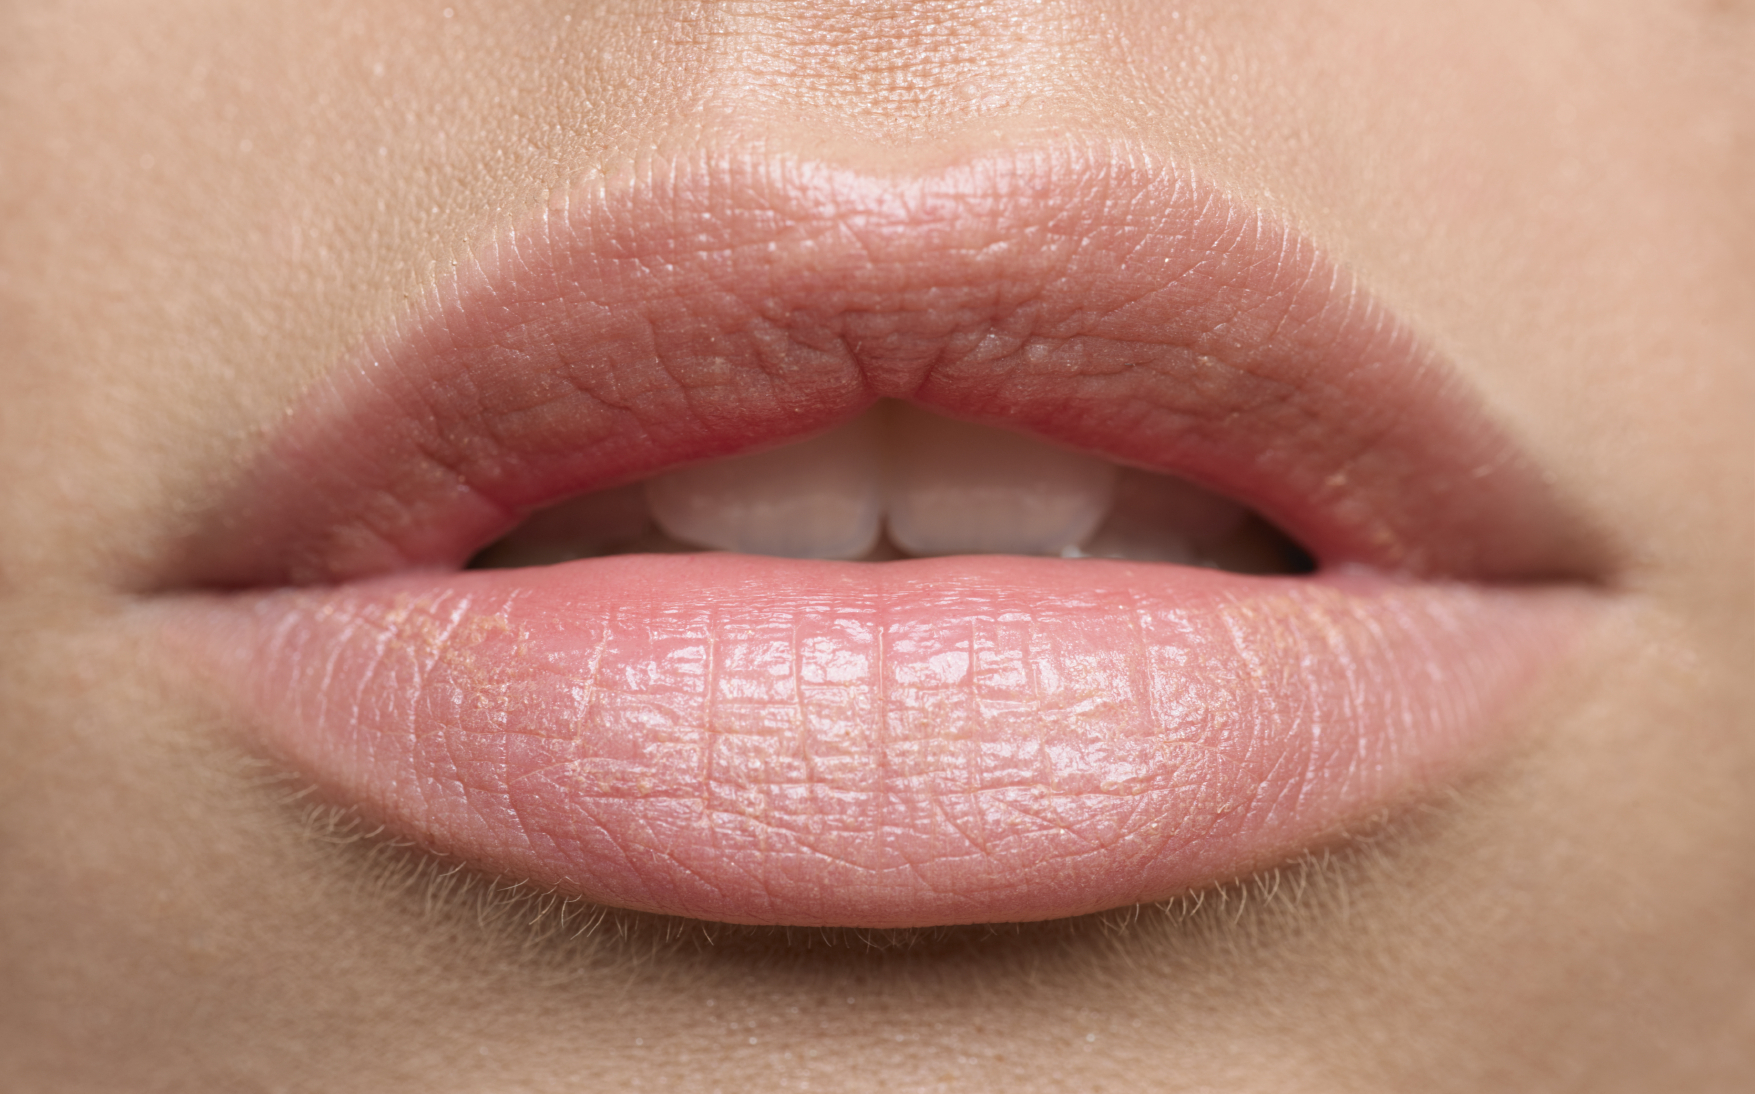 run the Vaseline over your lips every night if they are dry/cracked